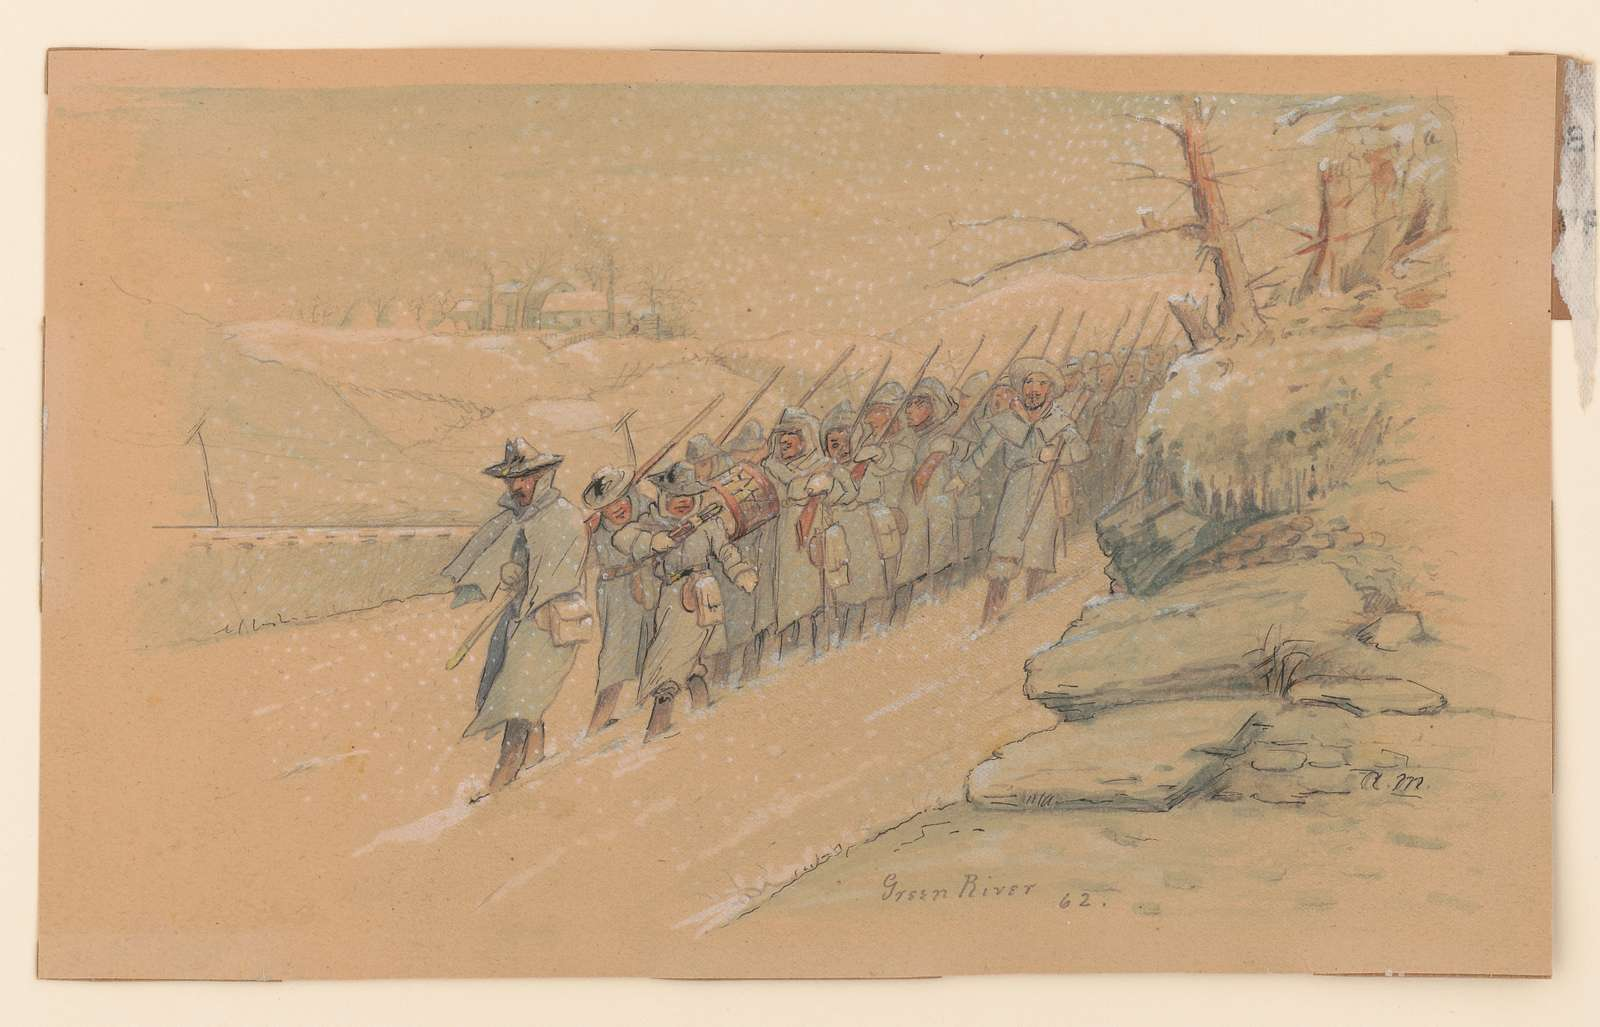 Return from picket duty, Green River, Kentucky, February 1862 A.M